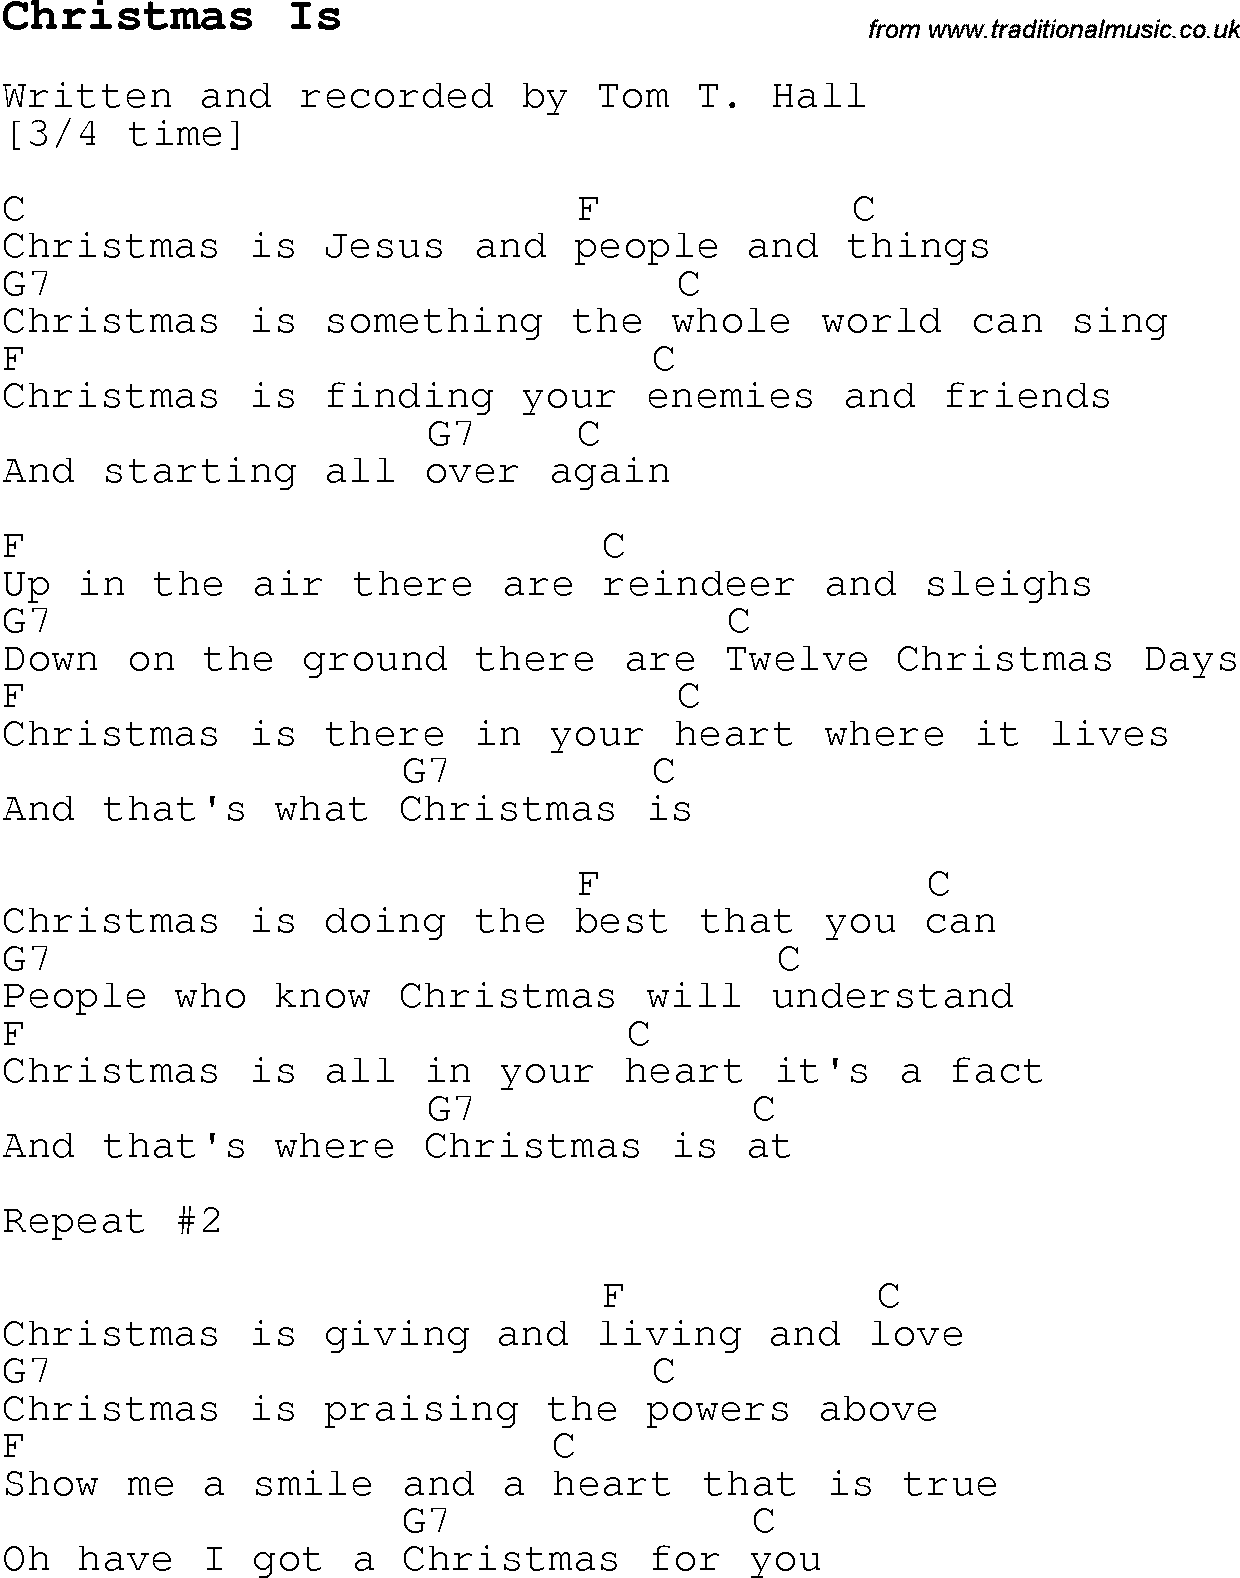 Christmas Carol/Song lyrics with chords for Christmas Is